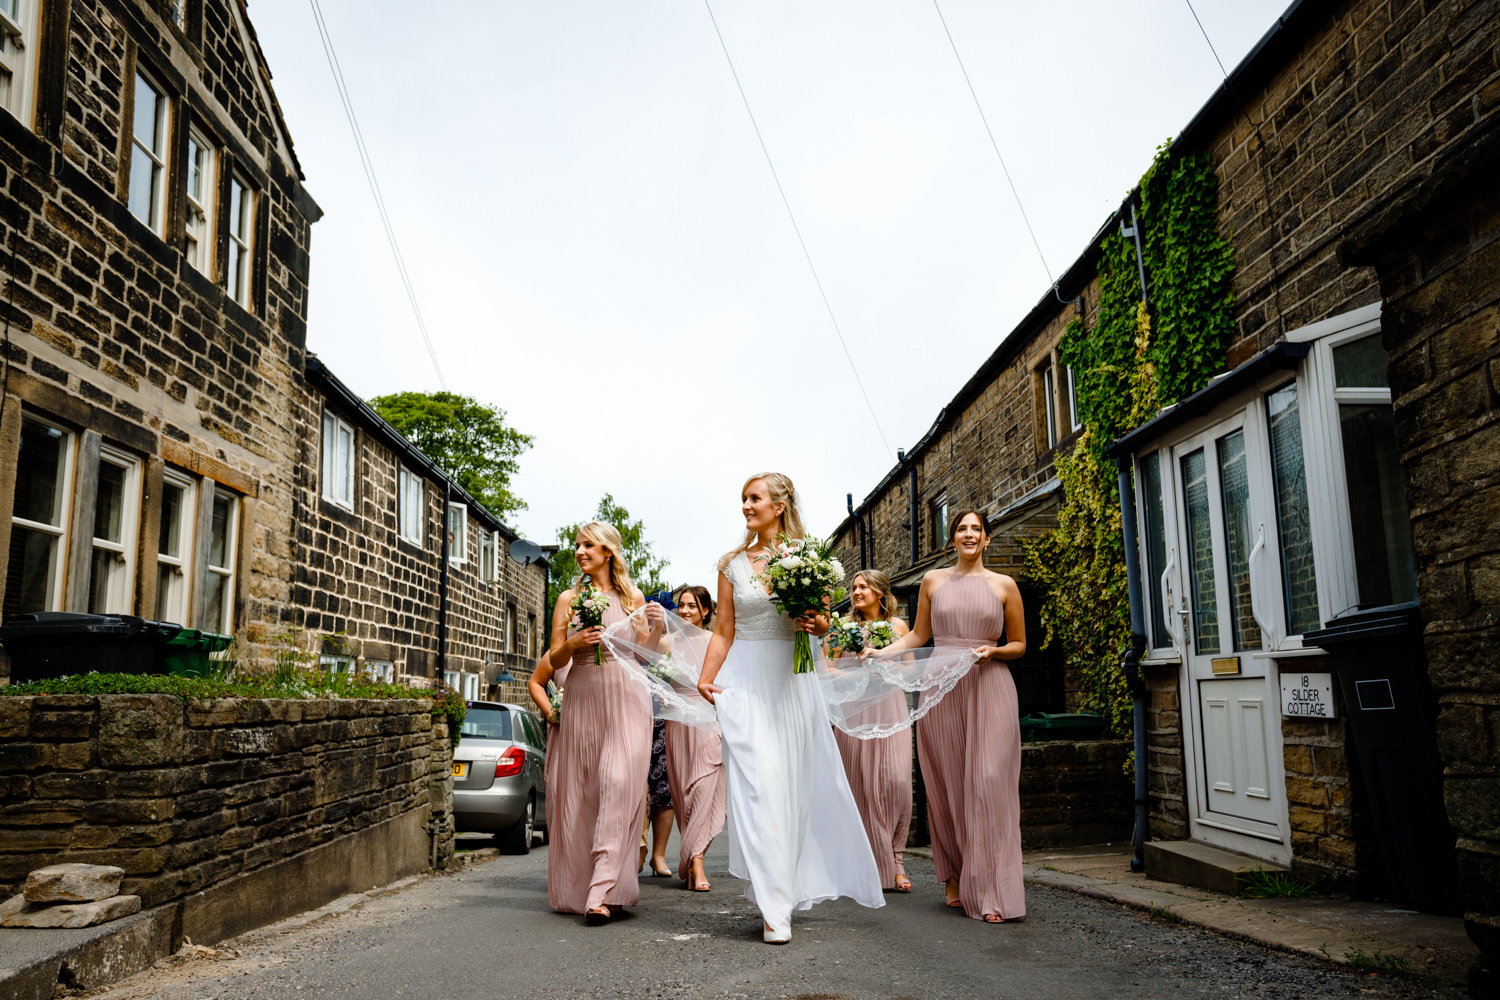 Katie-Luke-Huddersfield-wedding-photographer-Katie-Luke019.jpg